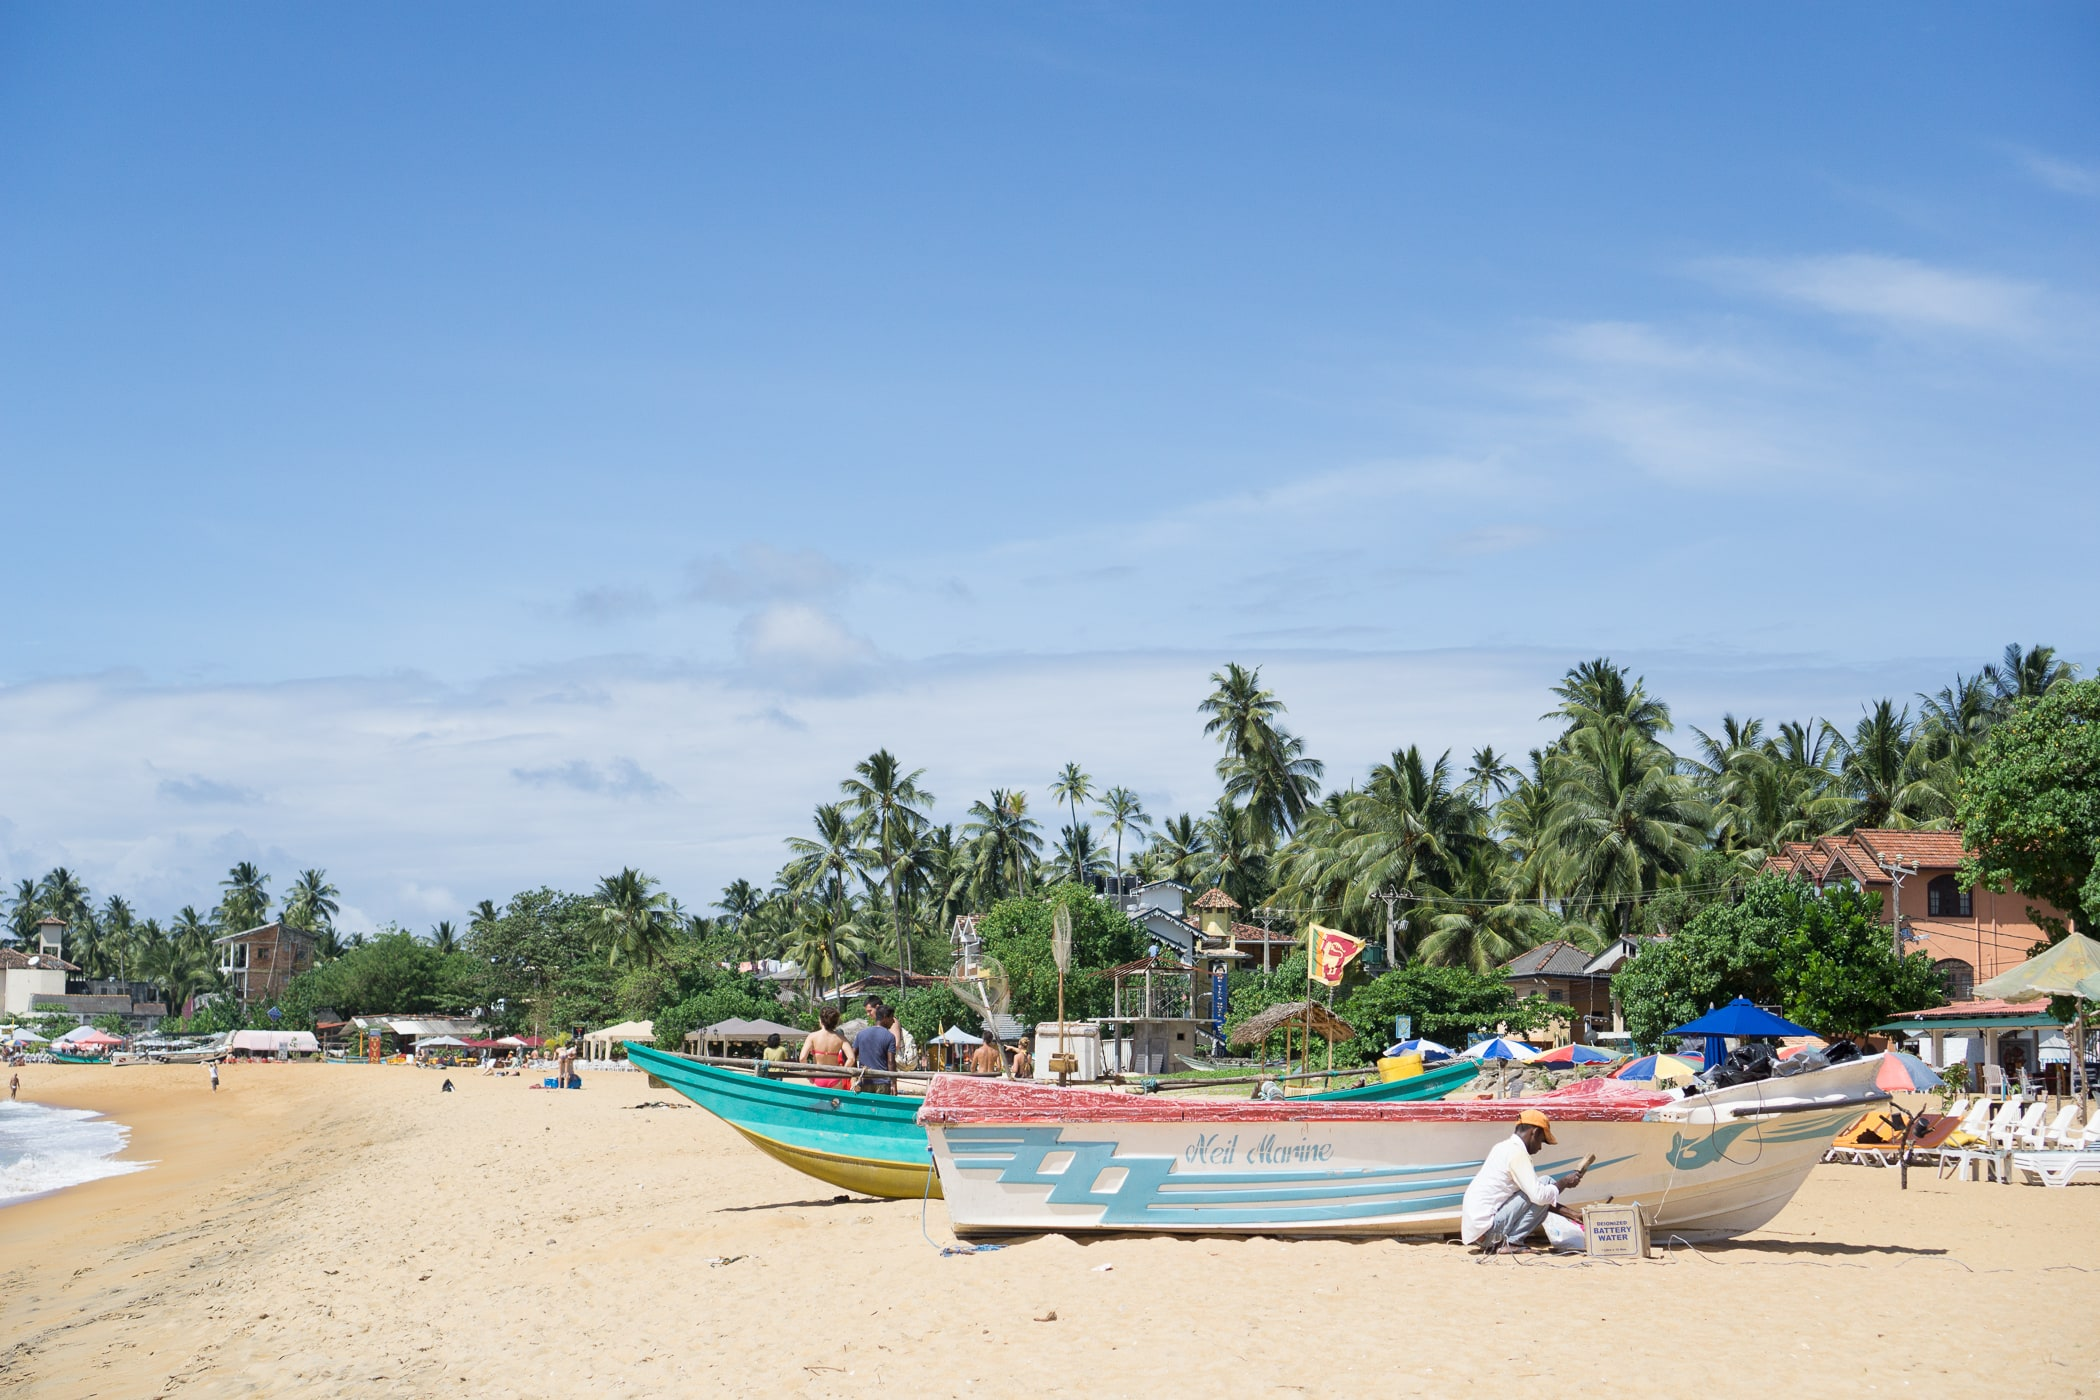 Boats along Unawatuna Beach in Sri Lanka